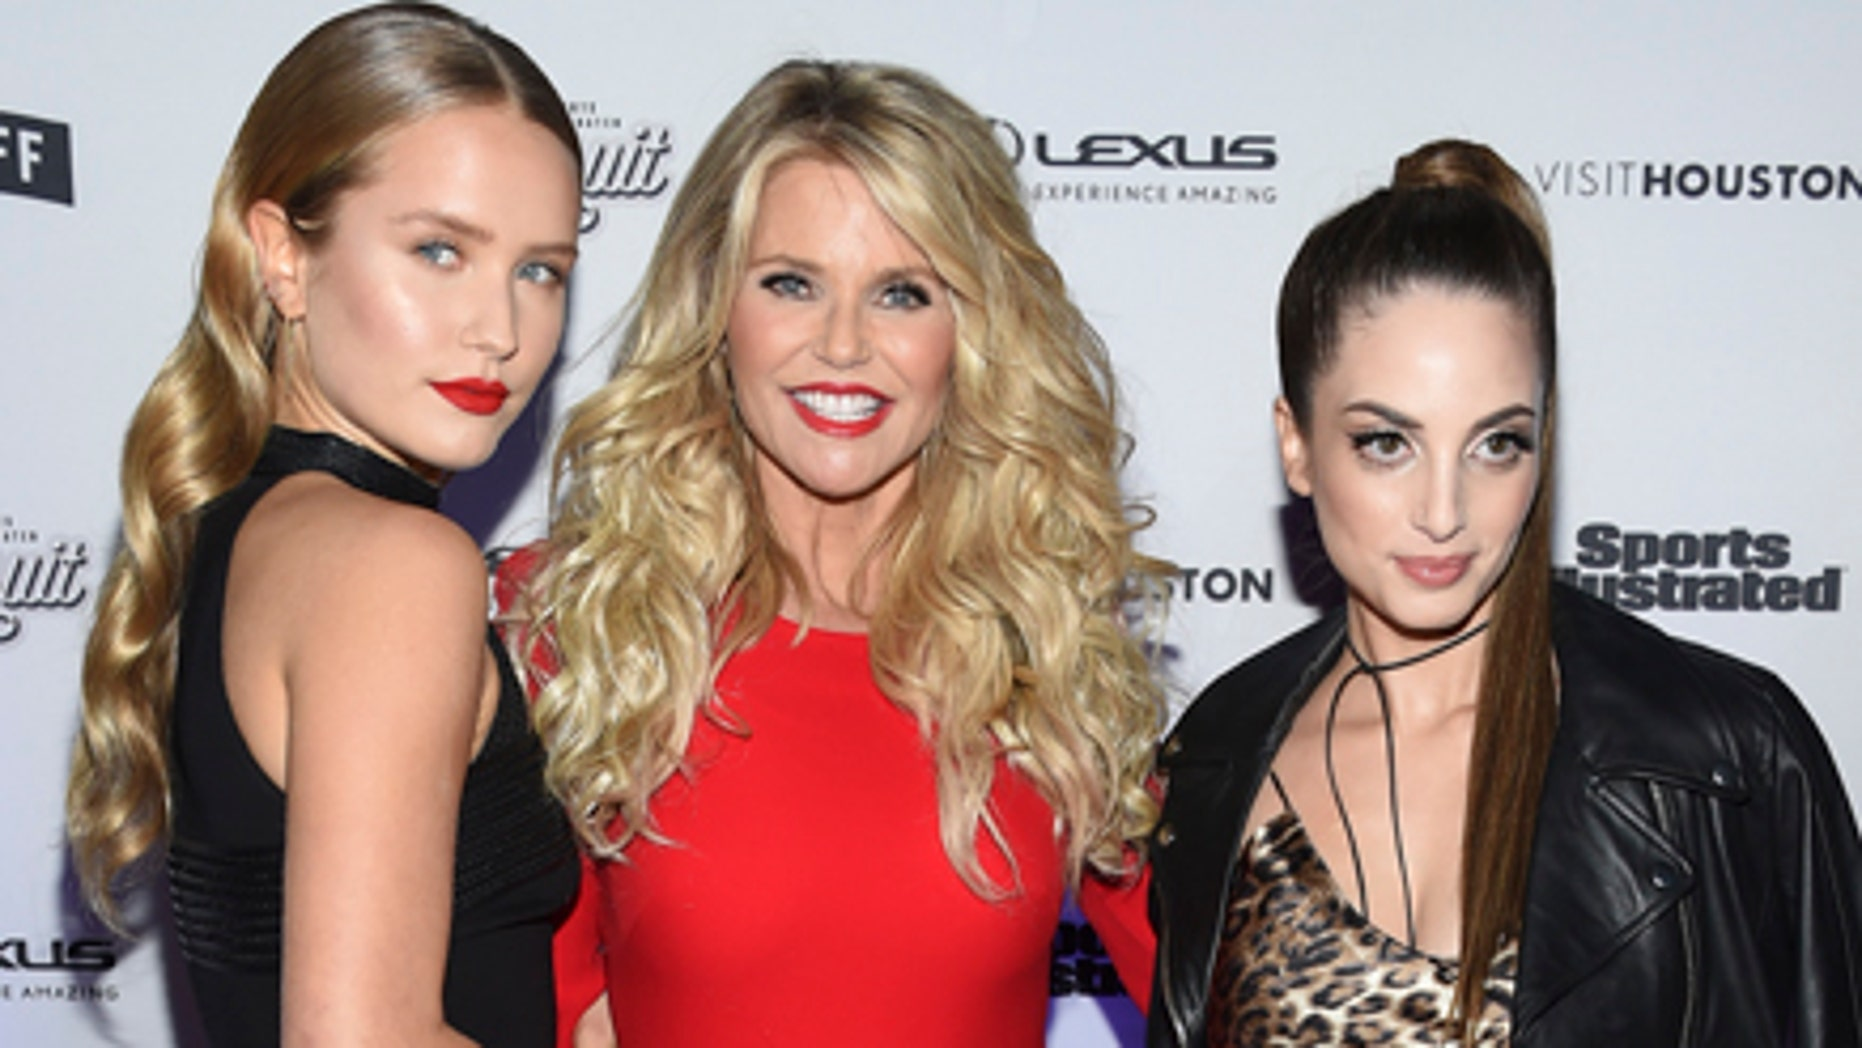 Christie Brinkley, center, and her daughters, from left, Sailor Brinkley Cook and Alexa Ray Joel attend the Sports Illustrated Swimsuit 2017 launch event at Center415 on Thursday, Feb. 16, 2017, in New York.